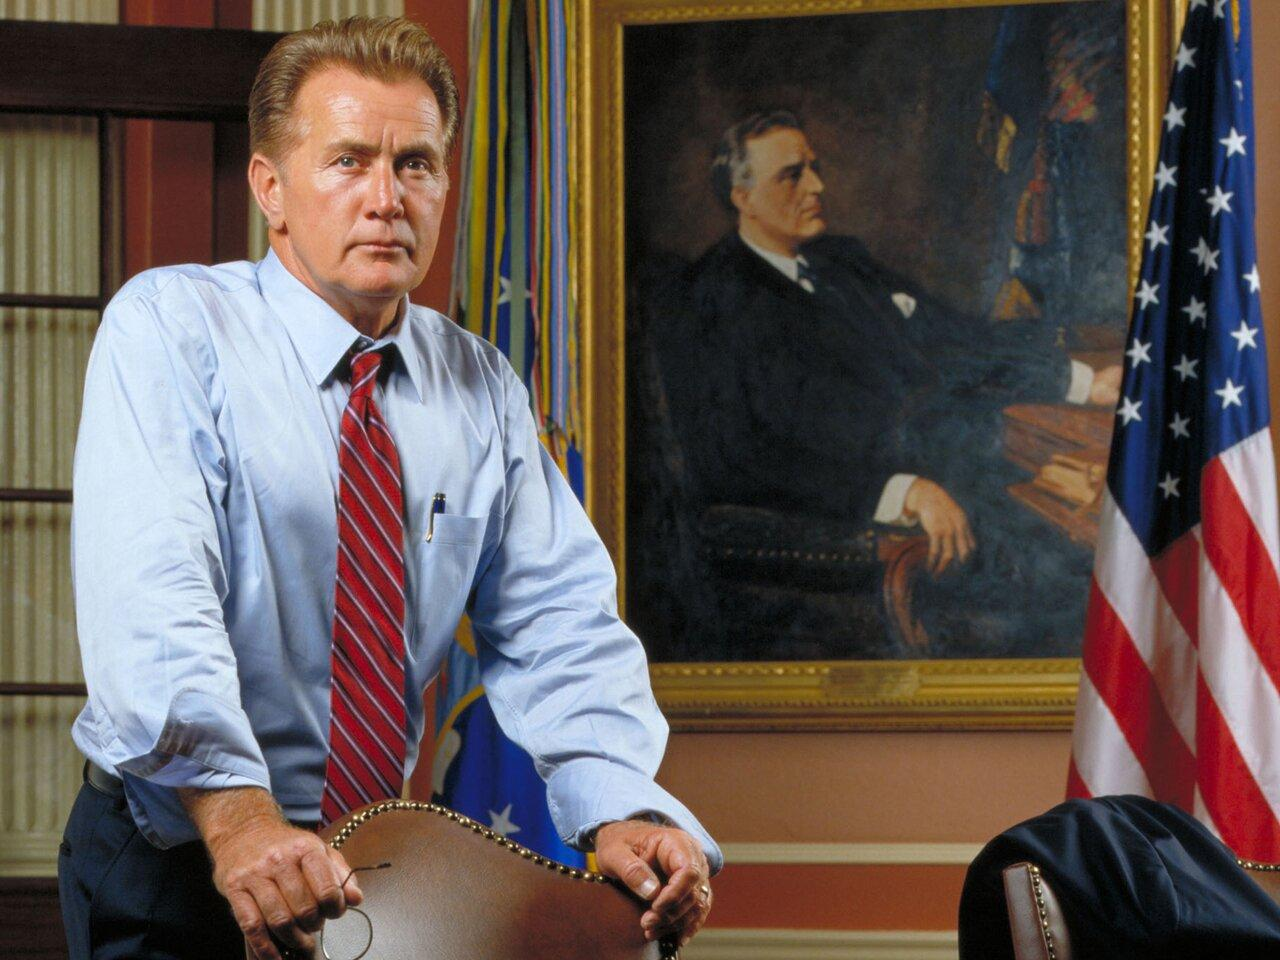 Donald Trump Presidency Sparks Rise In The West Wing Viewership